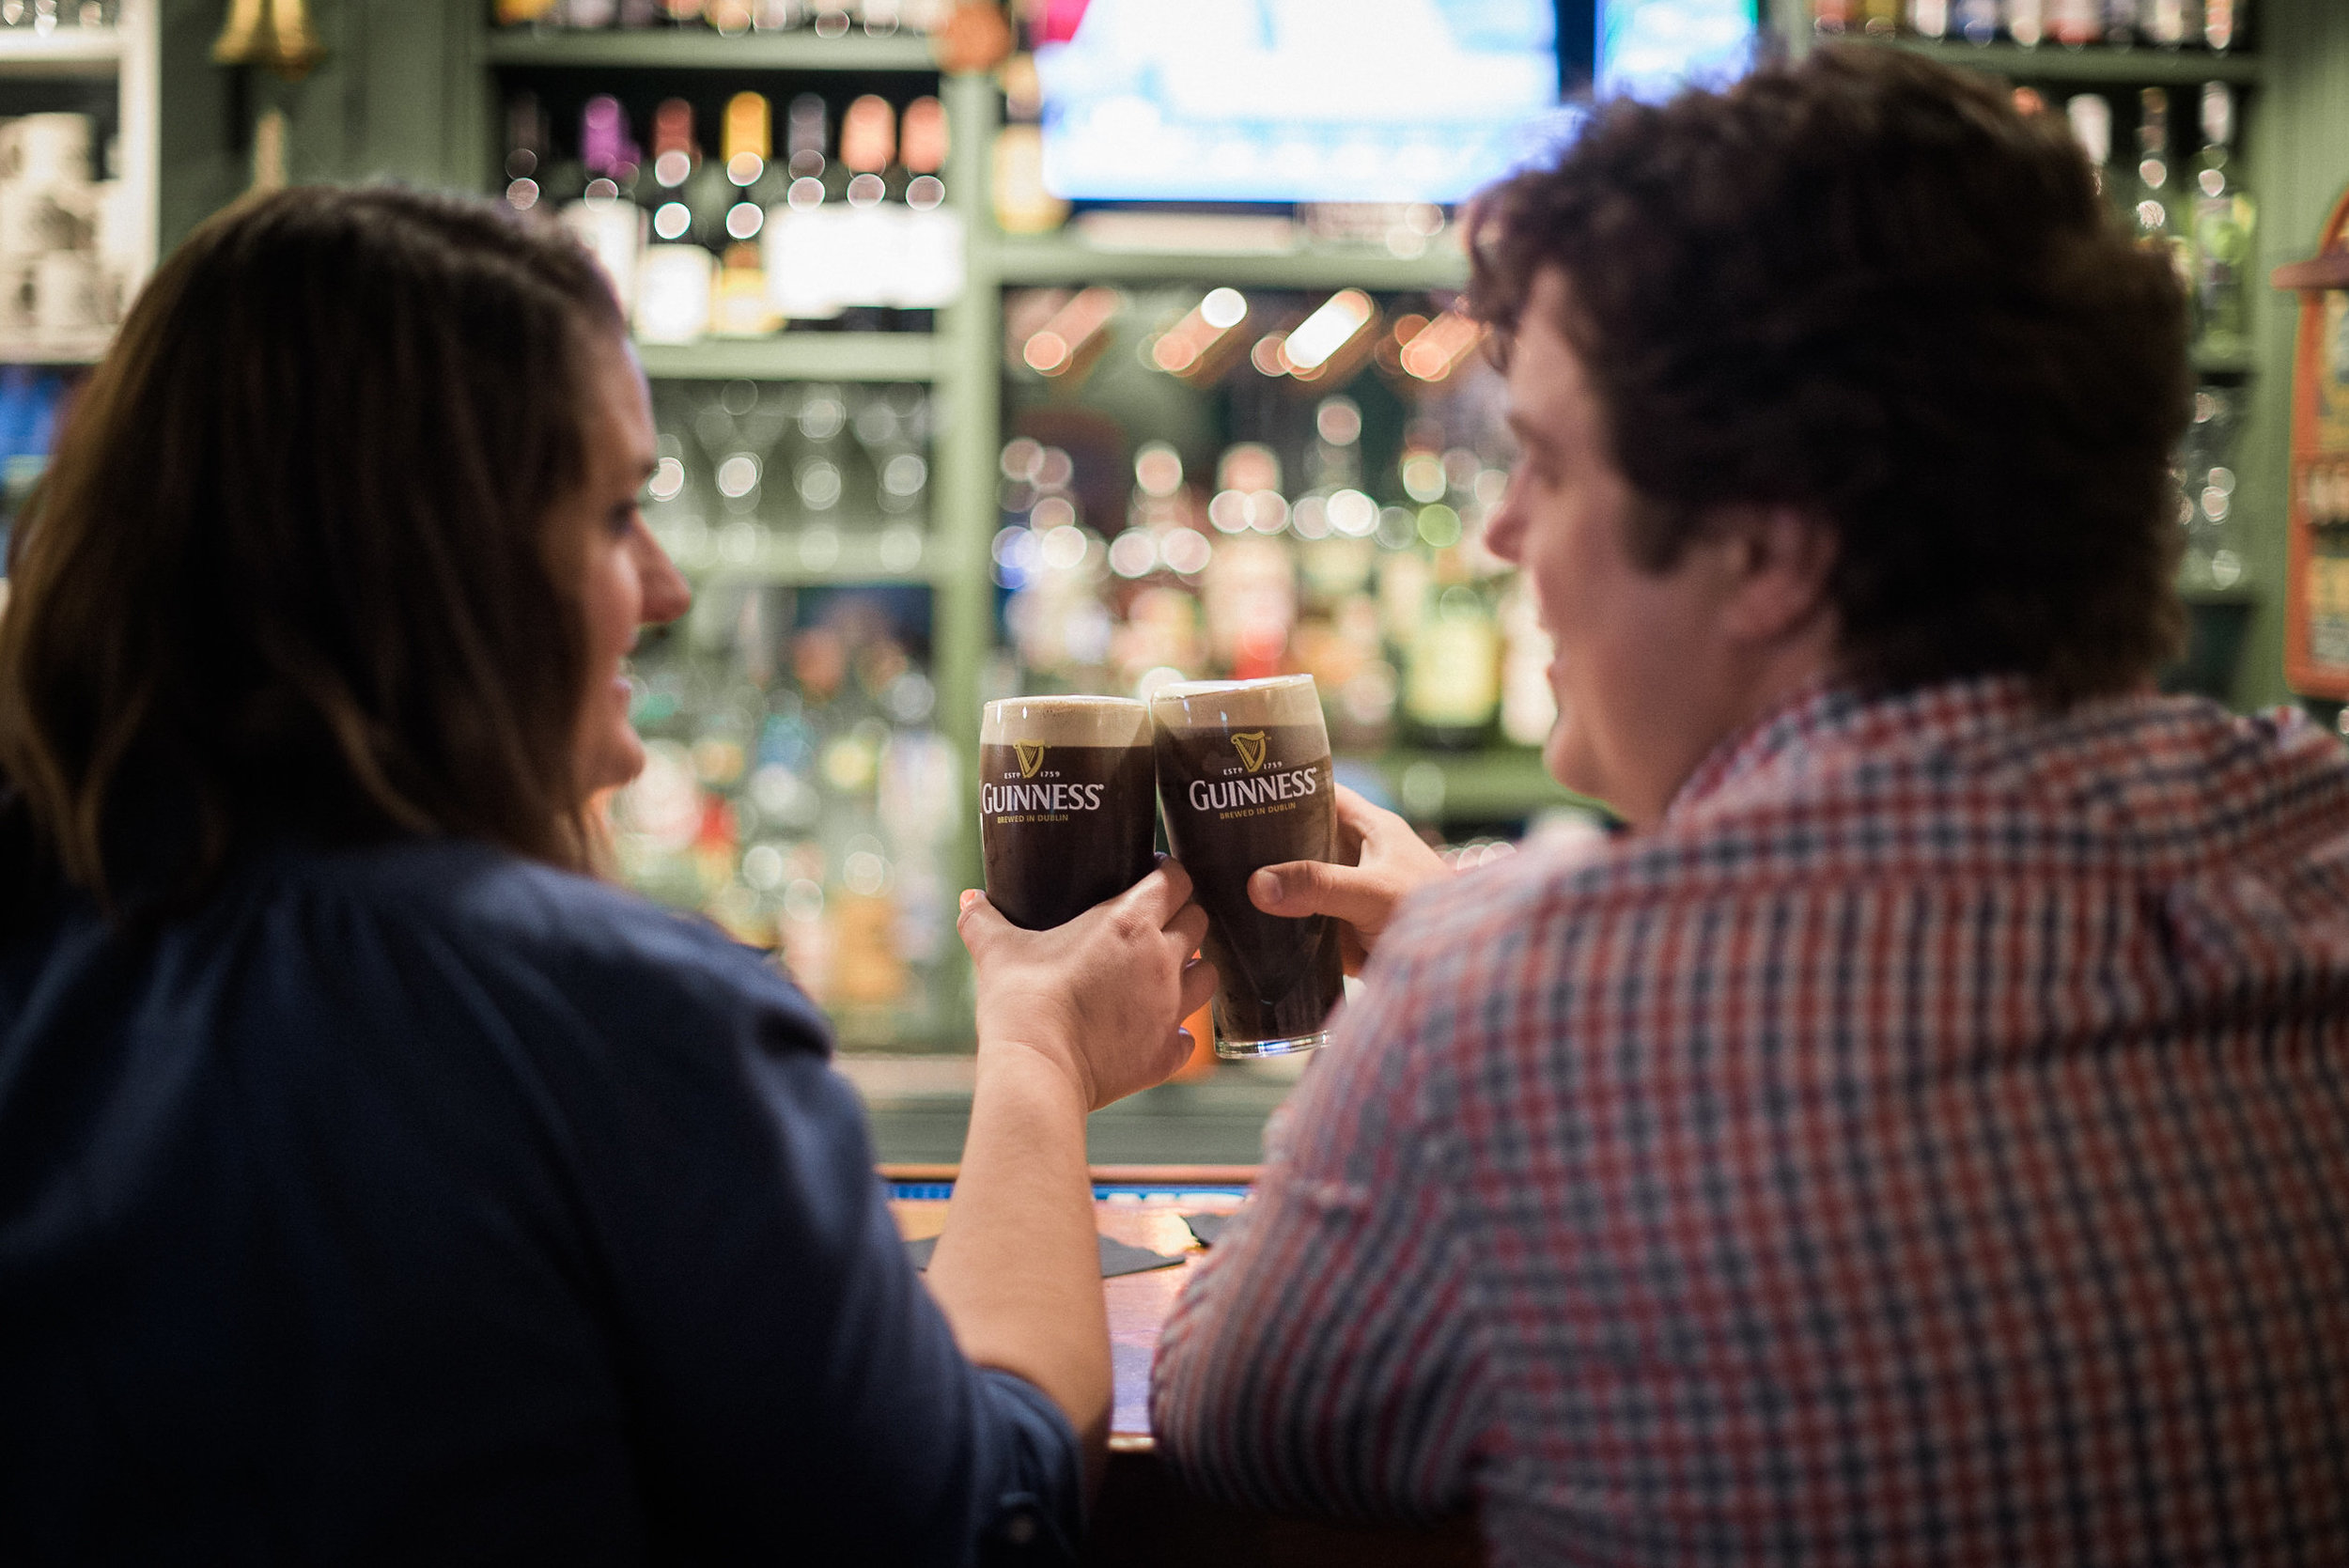 Man and woman sharing a drink